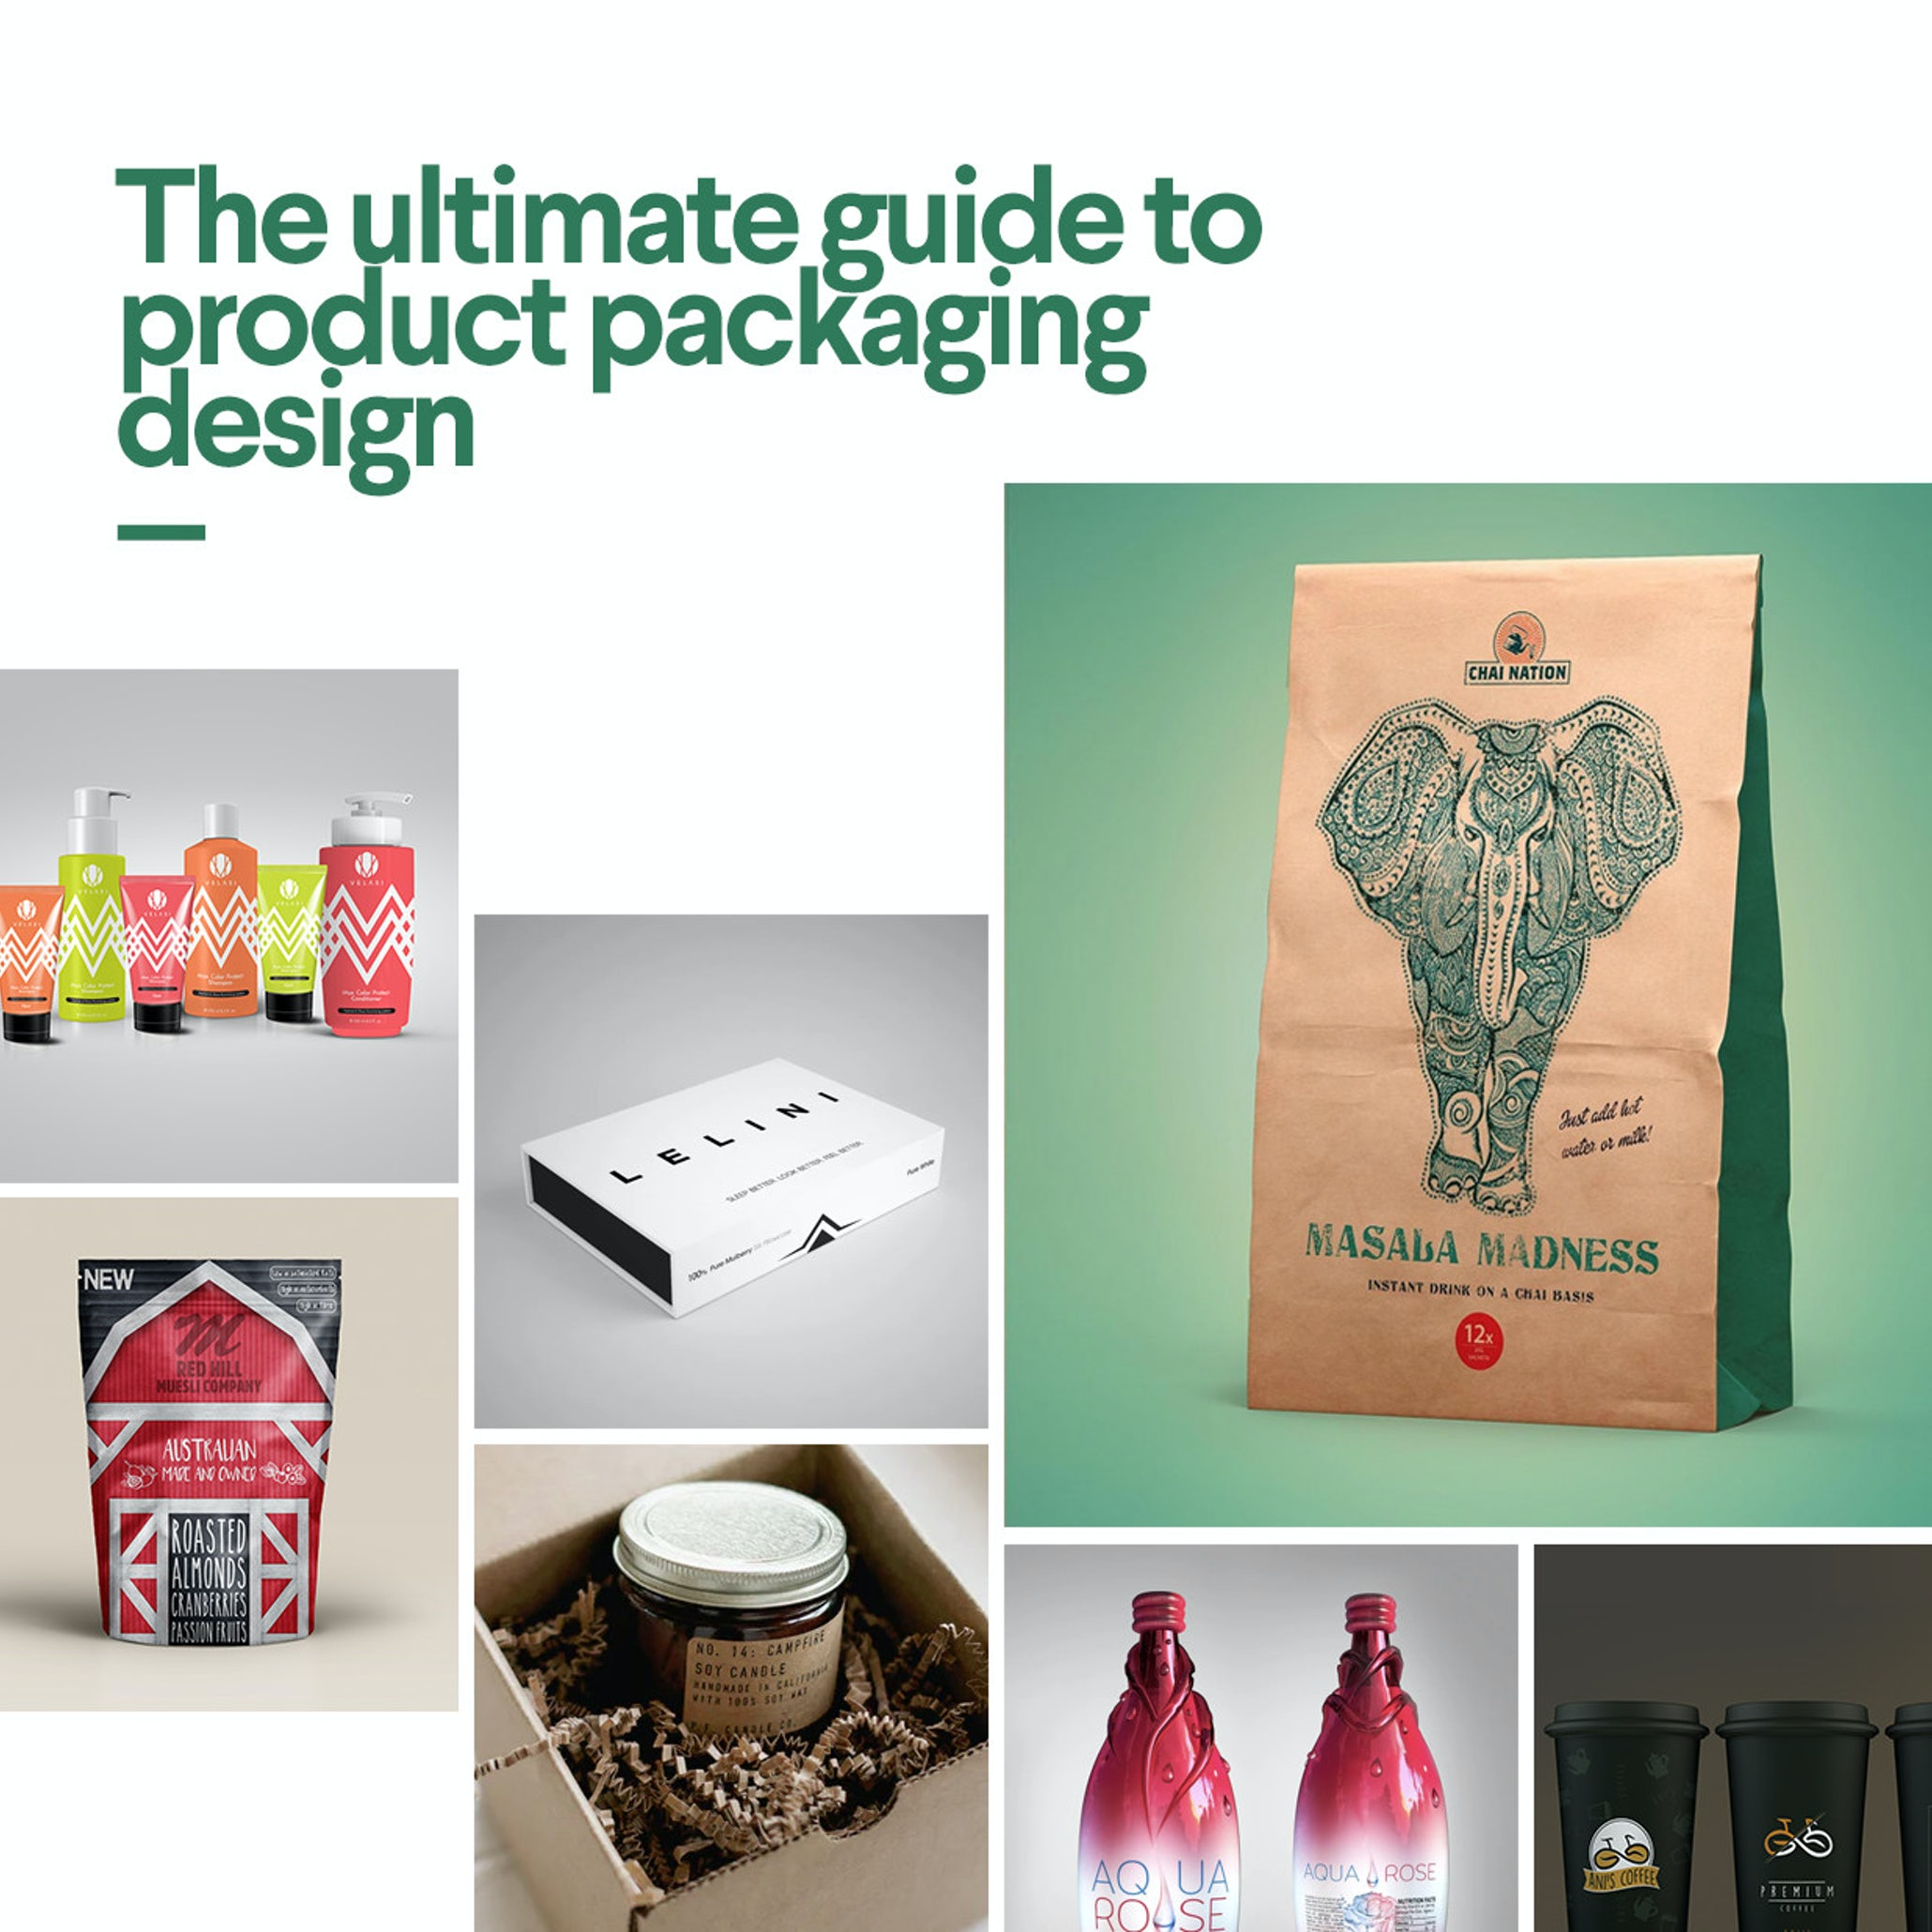 4044e25ab6f2 The ultimate guide to product packaging design - 99designs